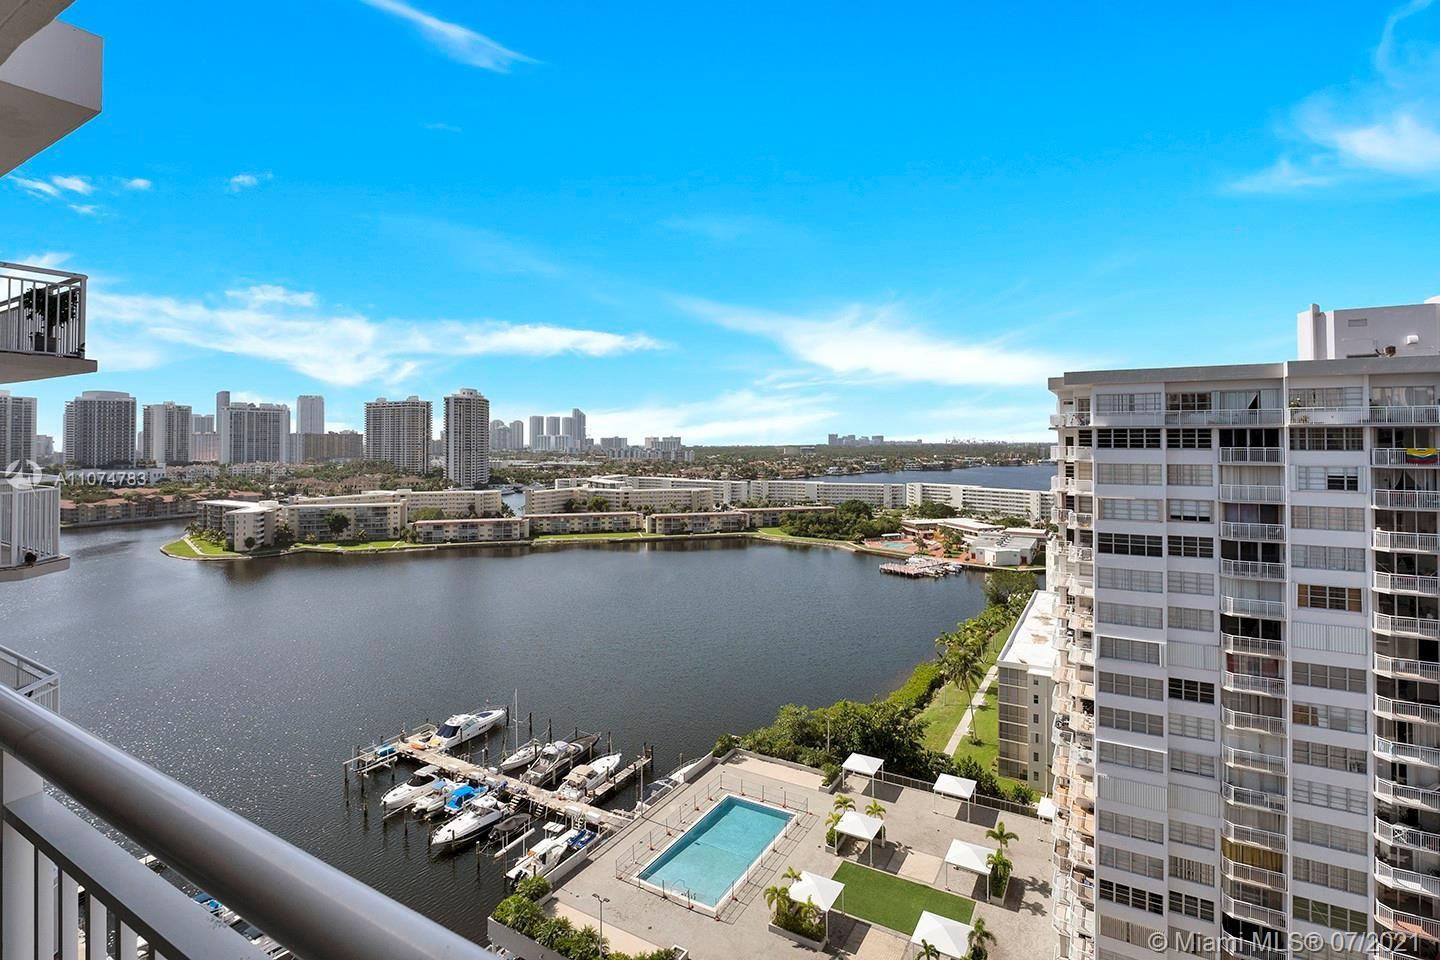 Modern 2/2 in Aventura is ready to move in! Property features ceramic tile floors throughout, update